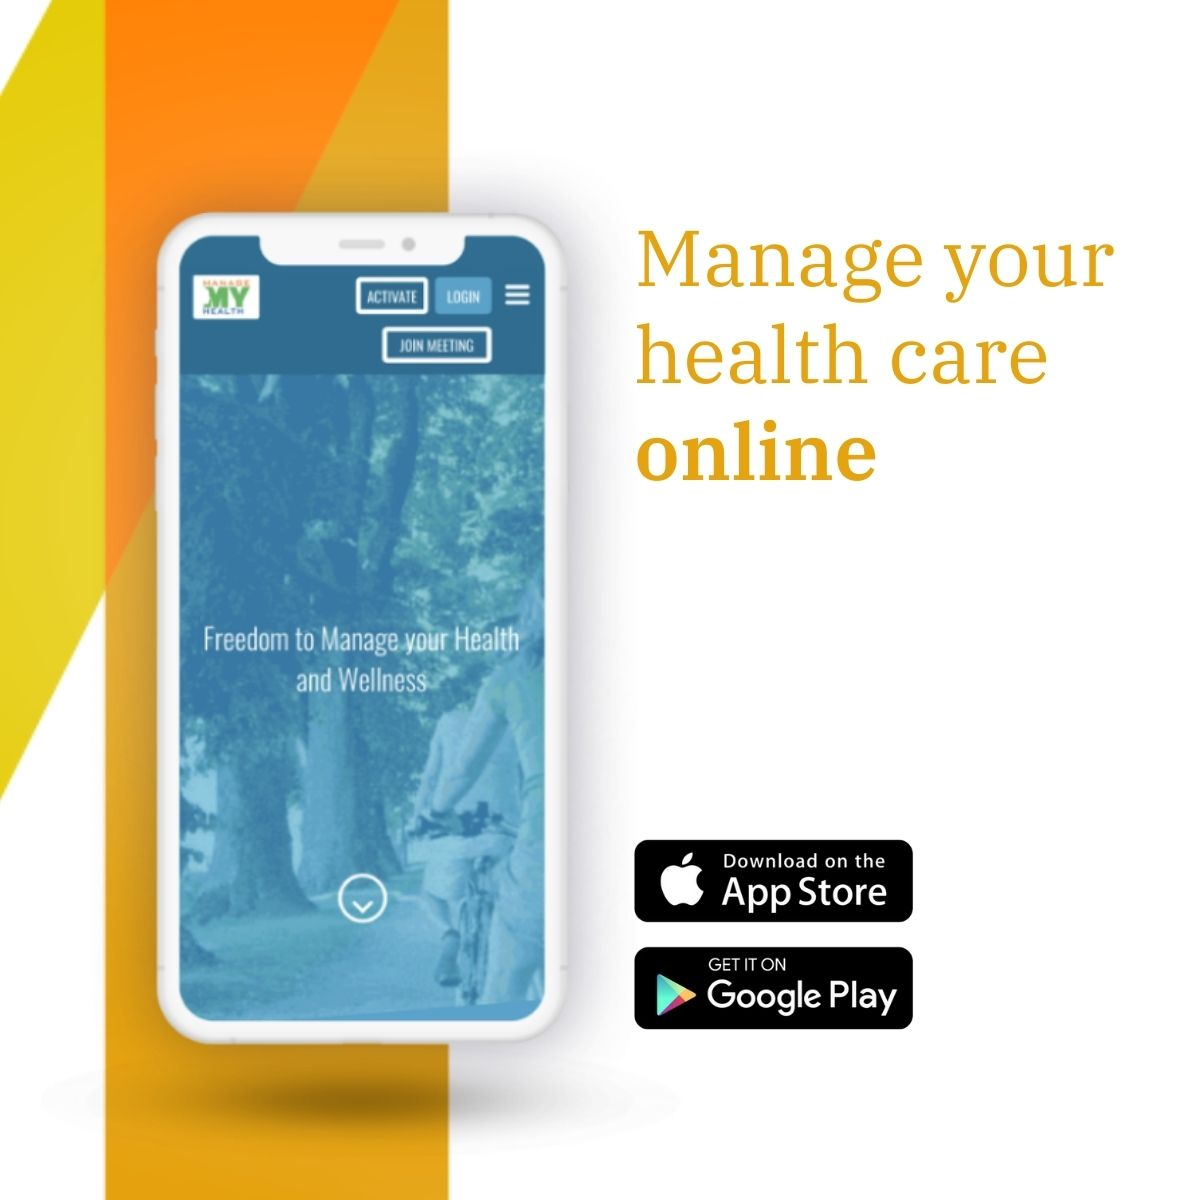 Mobile phone showing ManageMyHealth website